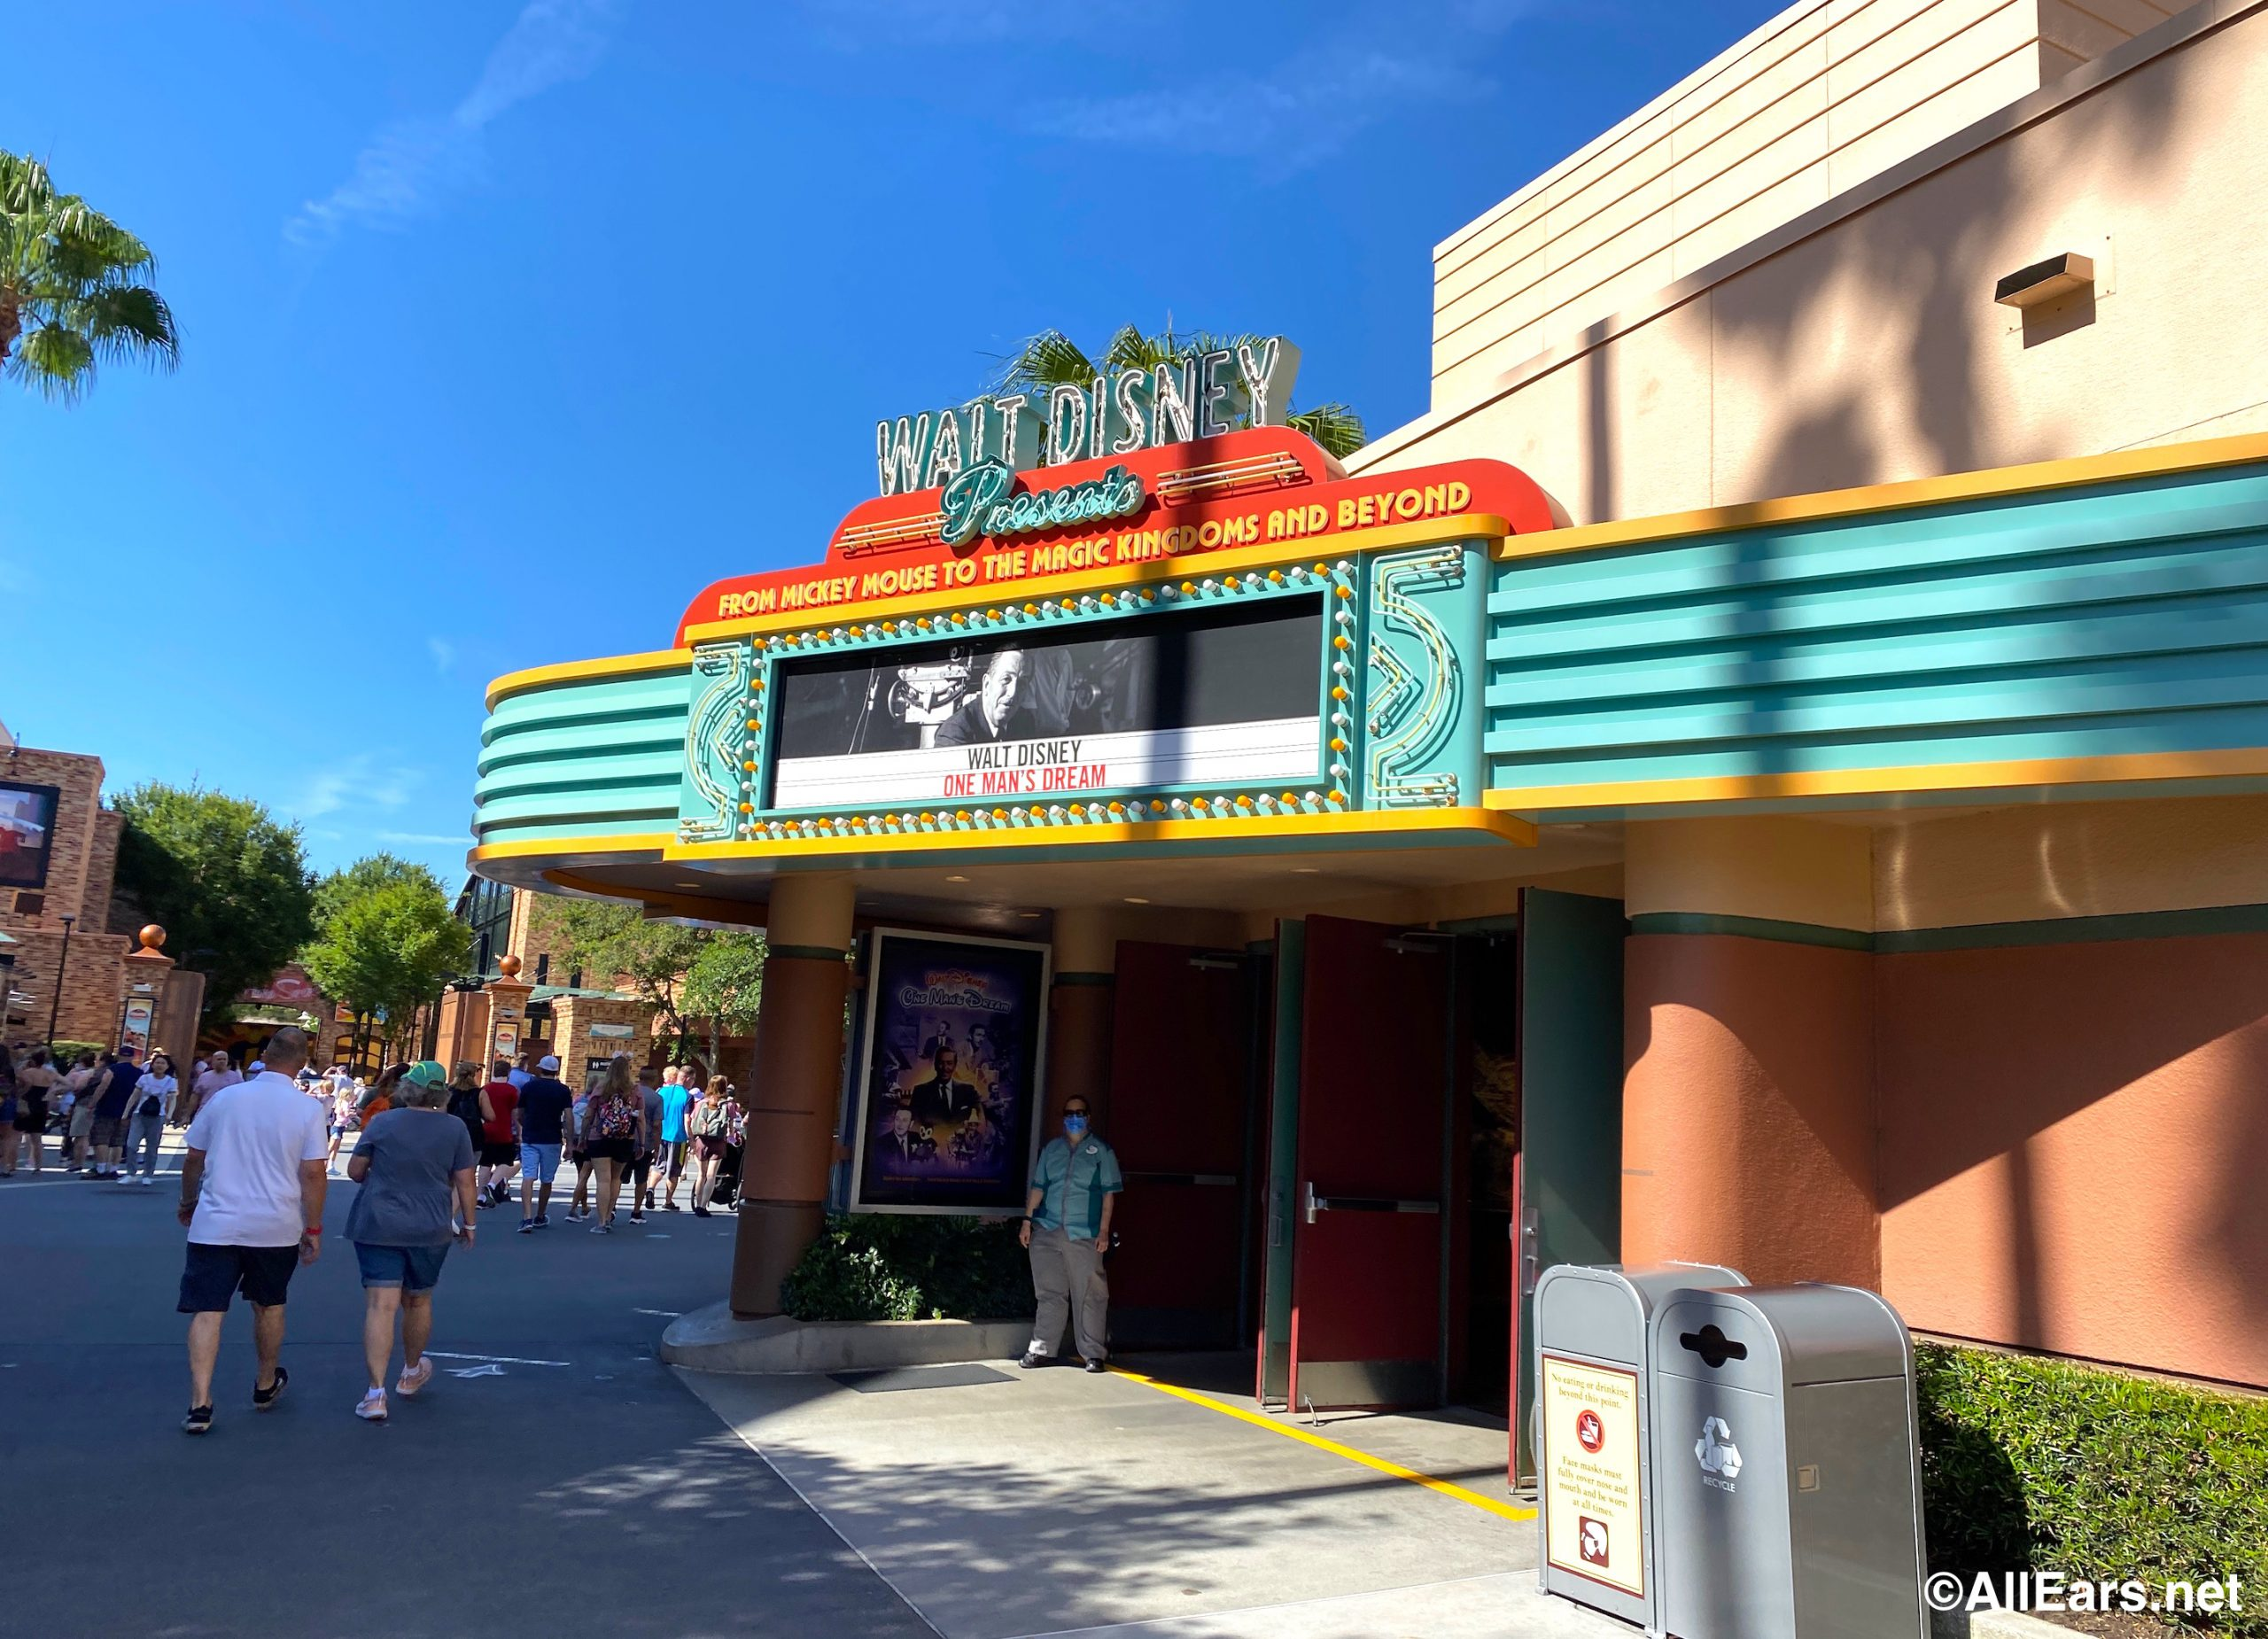 allears.net - Brianna LeCompte - Changes Made to Physical Distancing at a Disney's Hollywood Studios Show